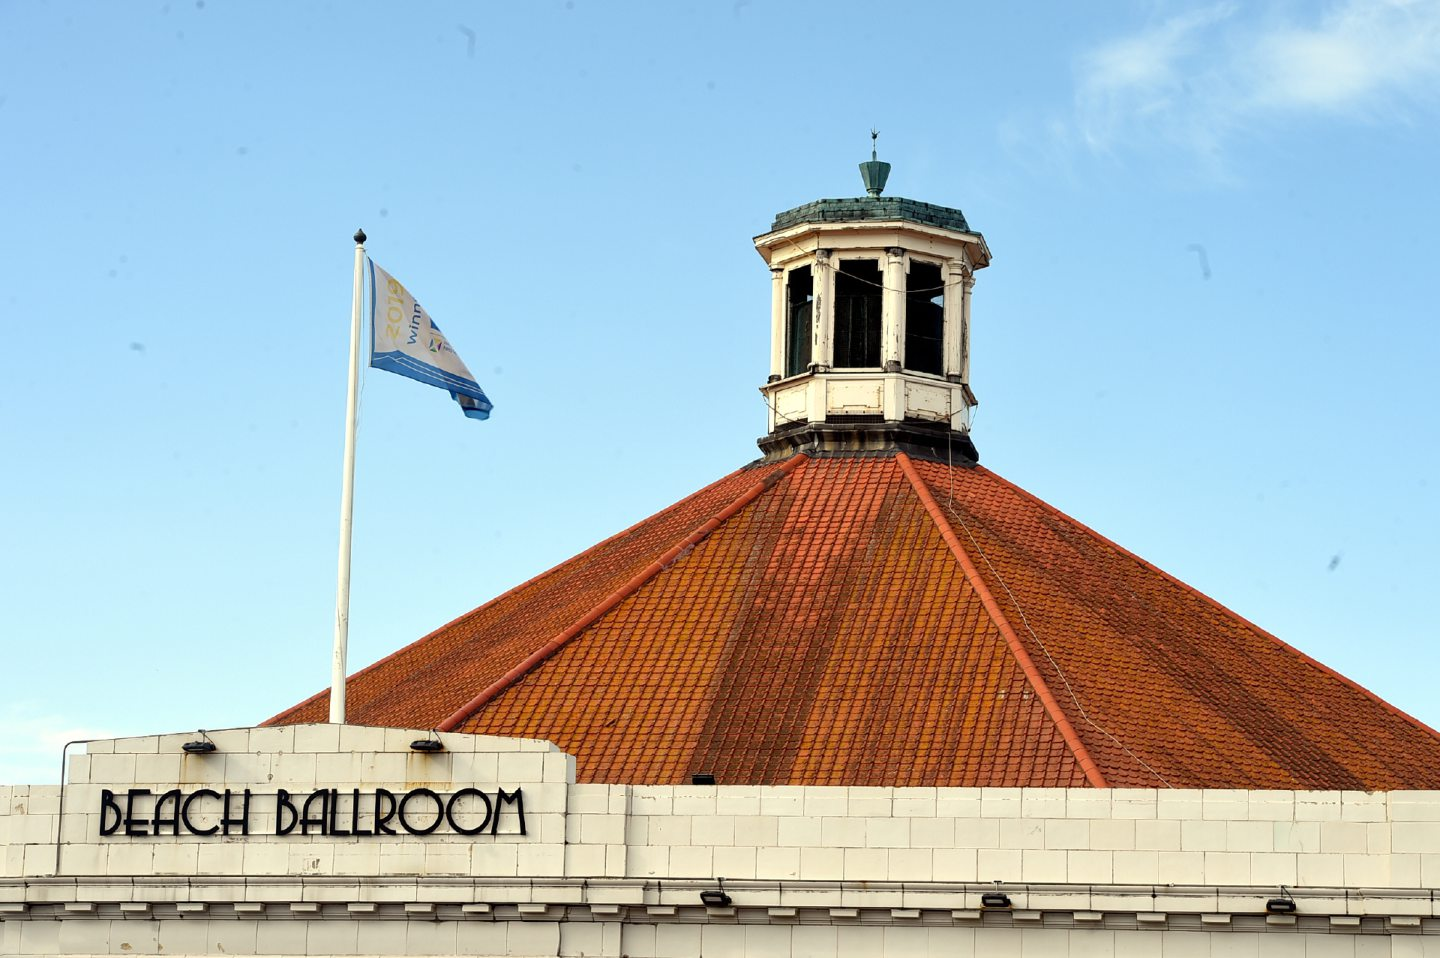 The roof of the Beach Ballroom.